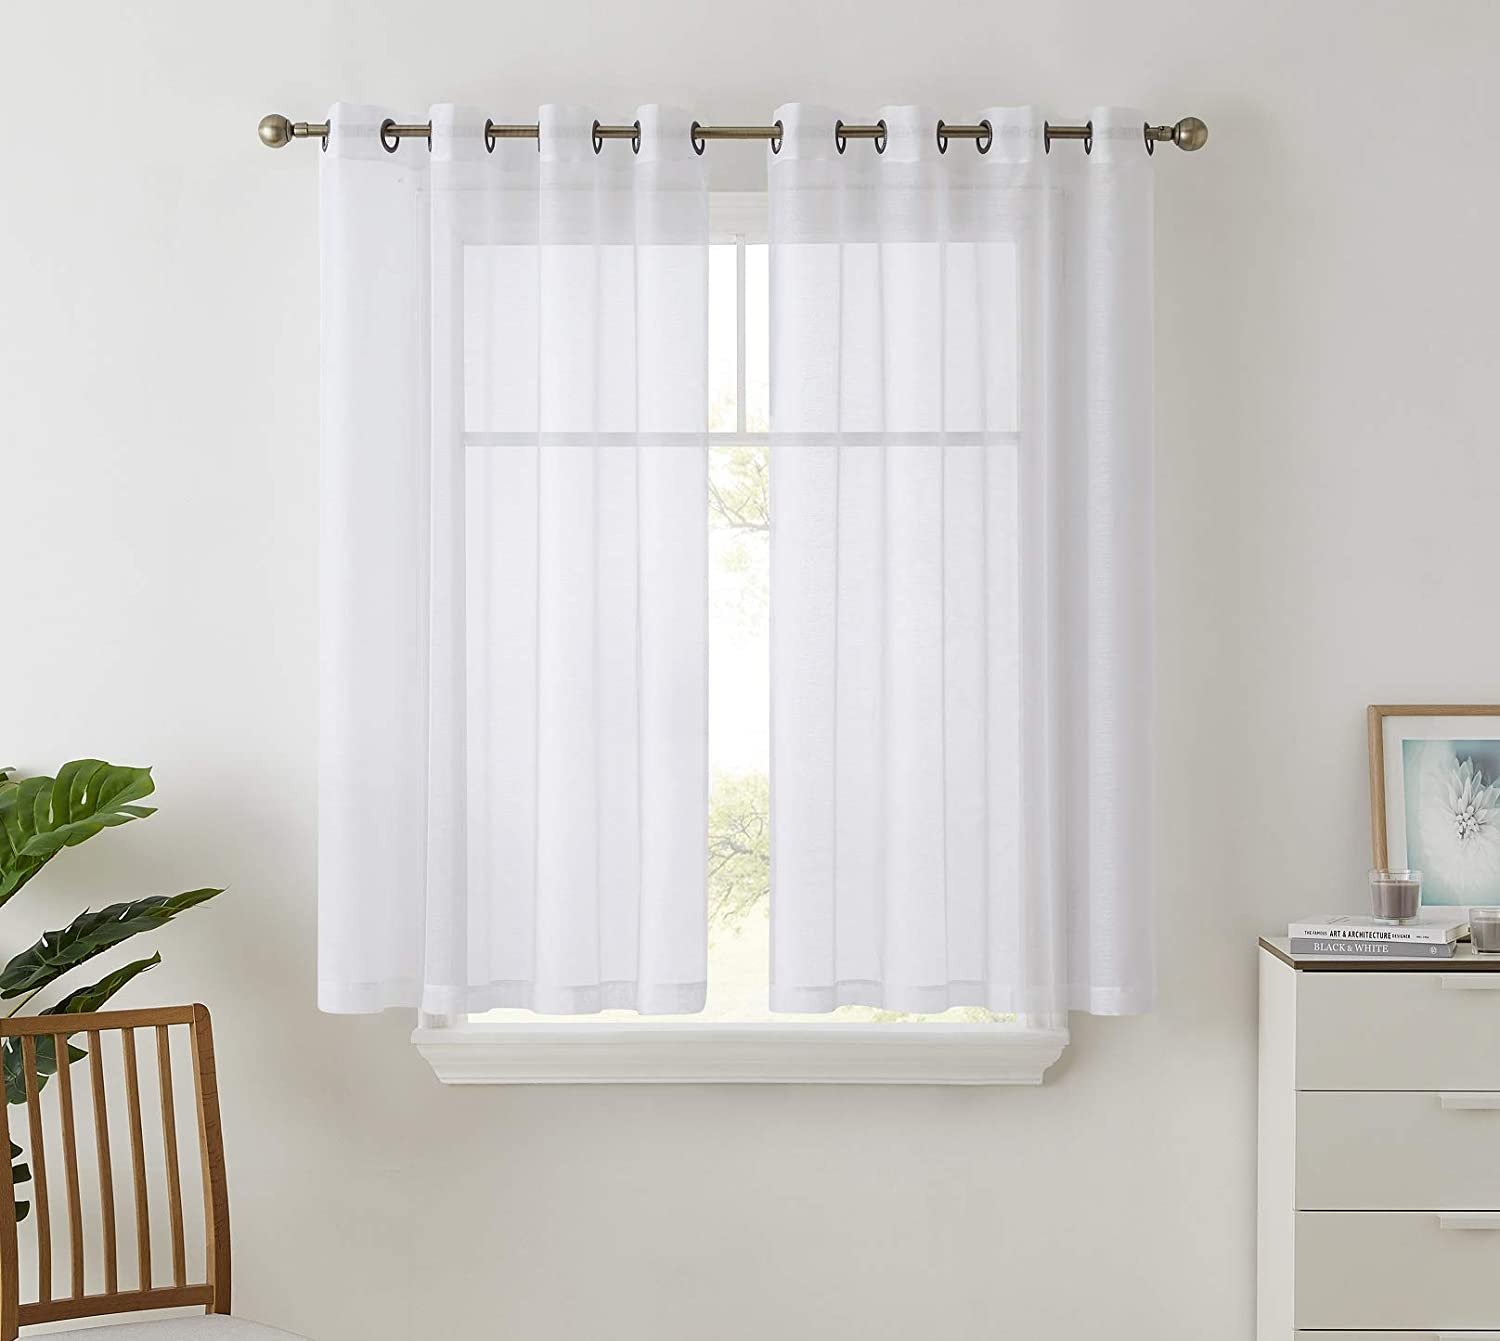 "HLC.ME 2 Piece Semi Sheer Curtains Window Treatment Grommet Voile Panels for Living Room, Bedroom, Kids Room (54"" W x 63"" L, White)"